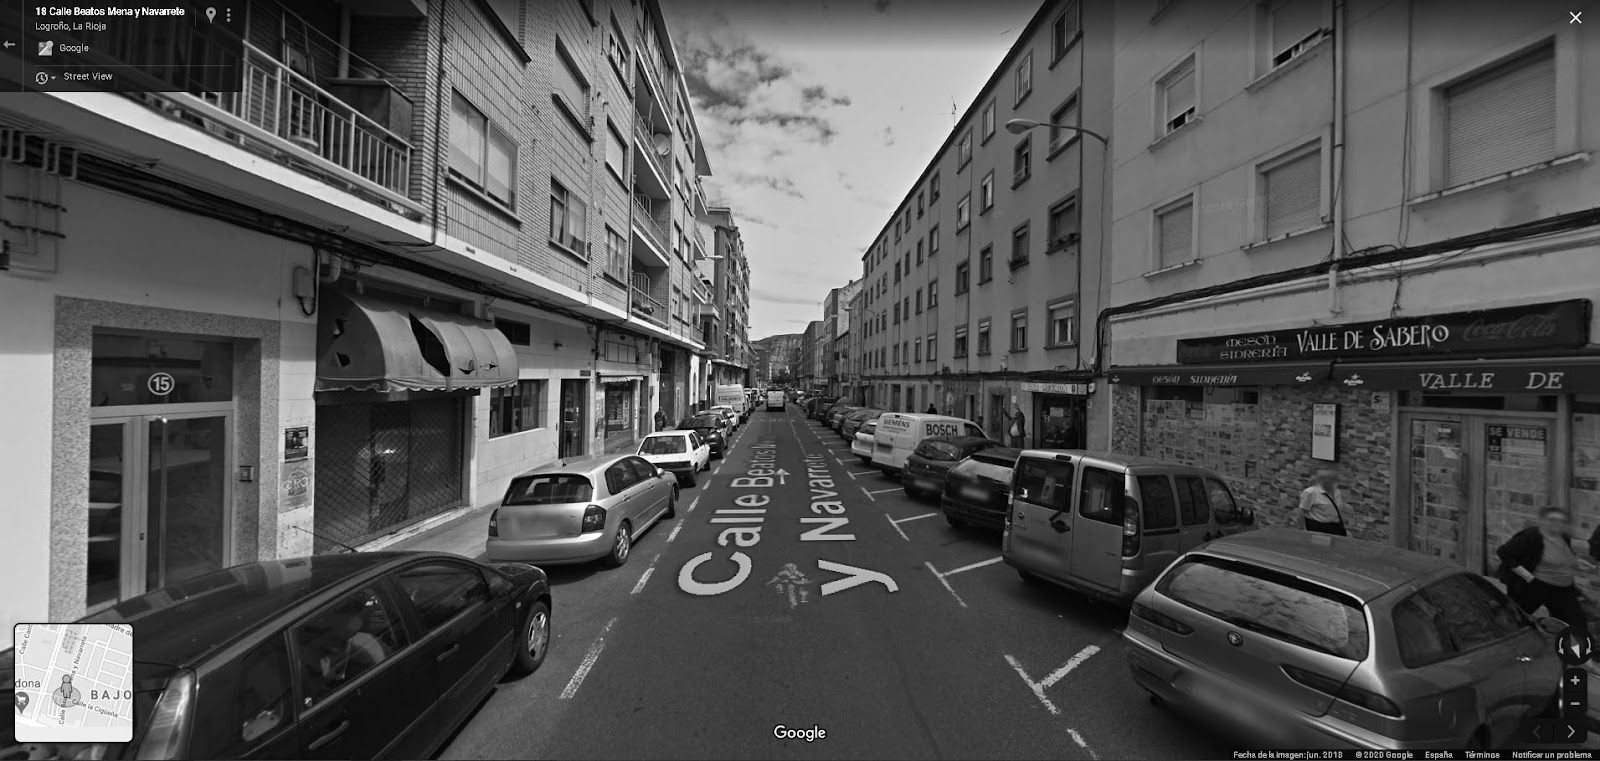 Fragmentos de un paseo virtual. 2ªparada: Parking San Prudencio